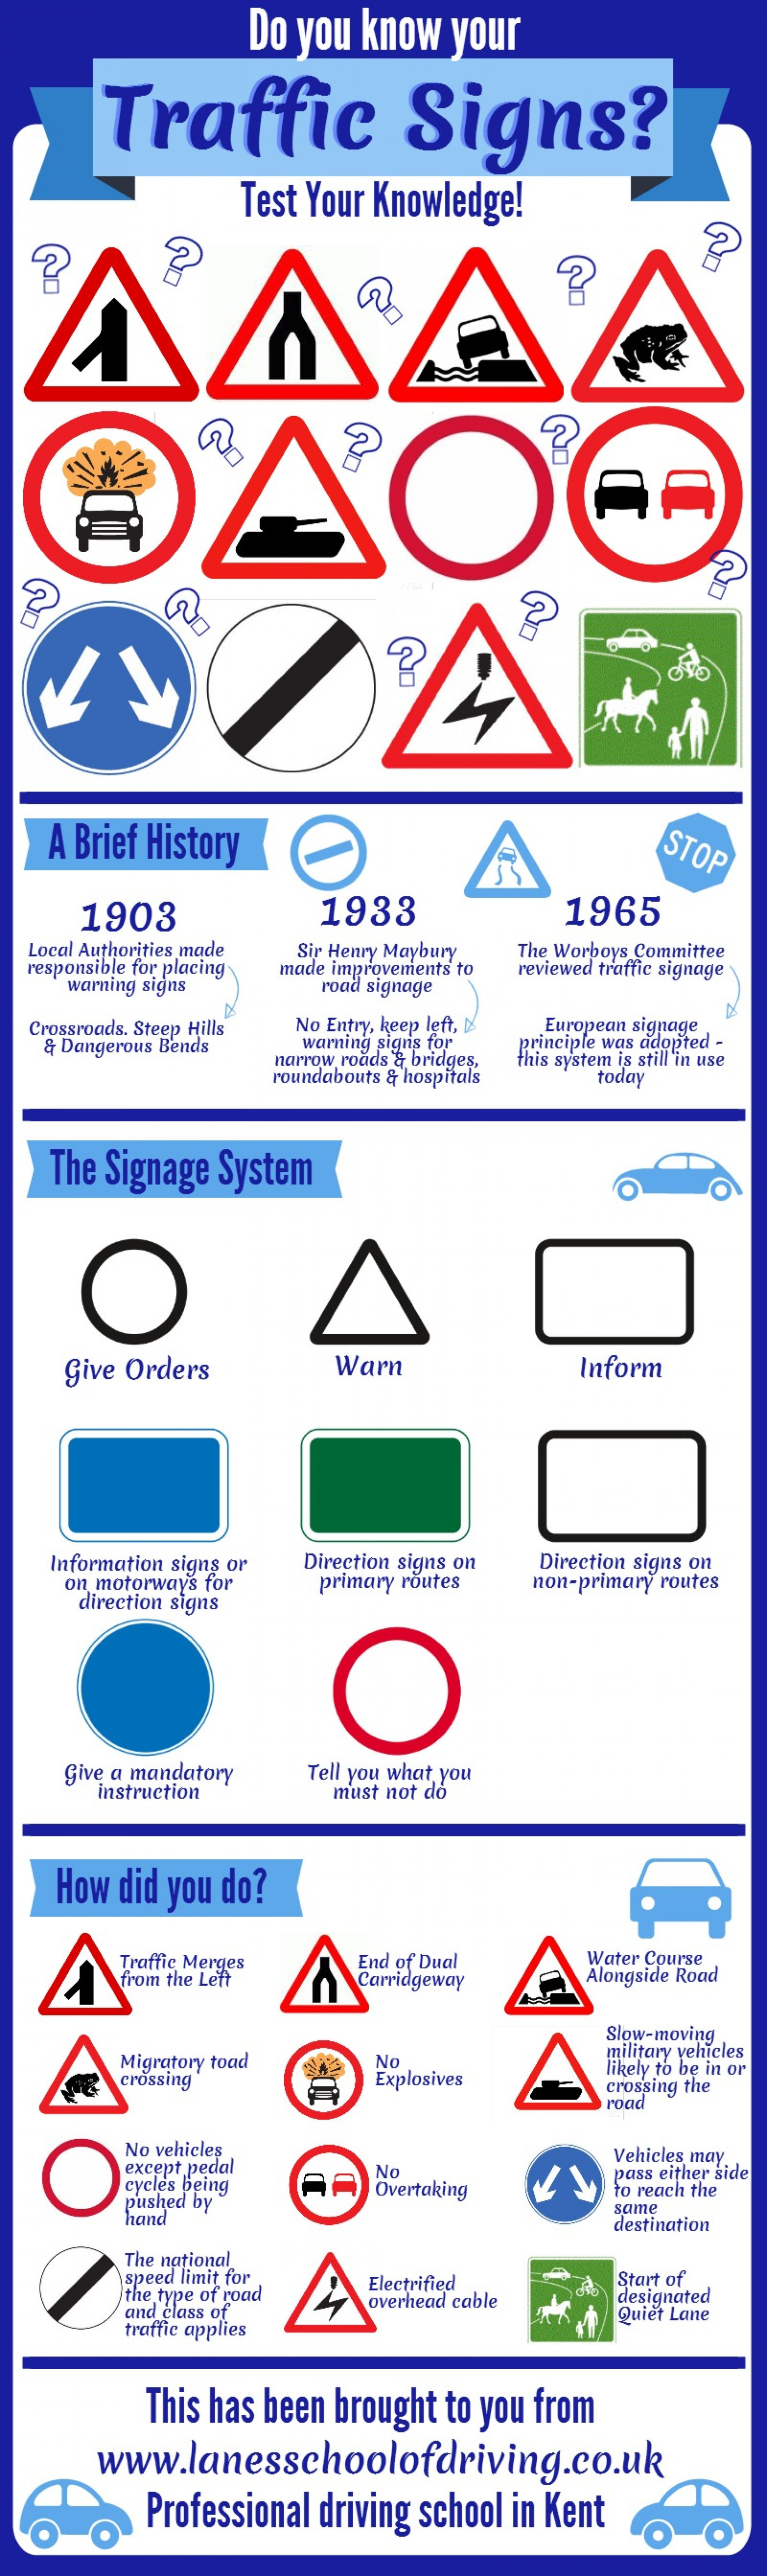 Do You Know Your Traffic Signs? Infographic